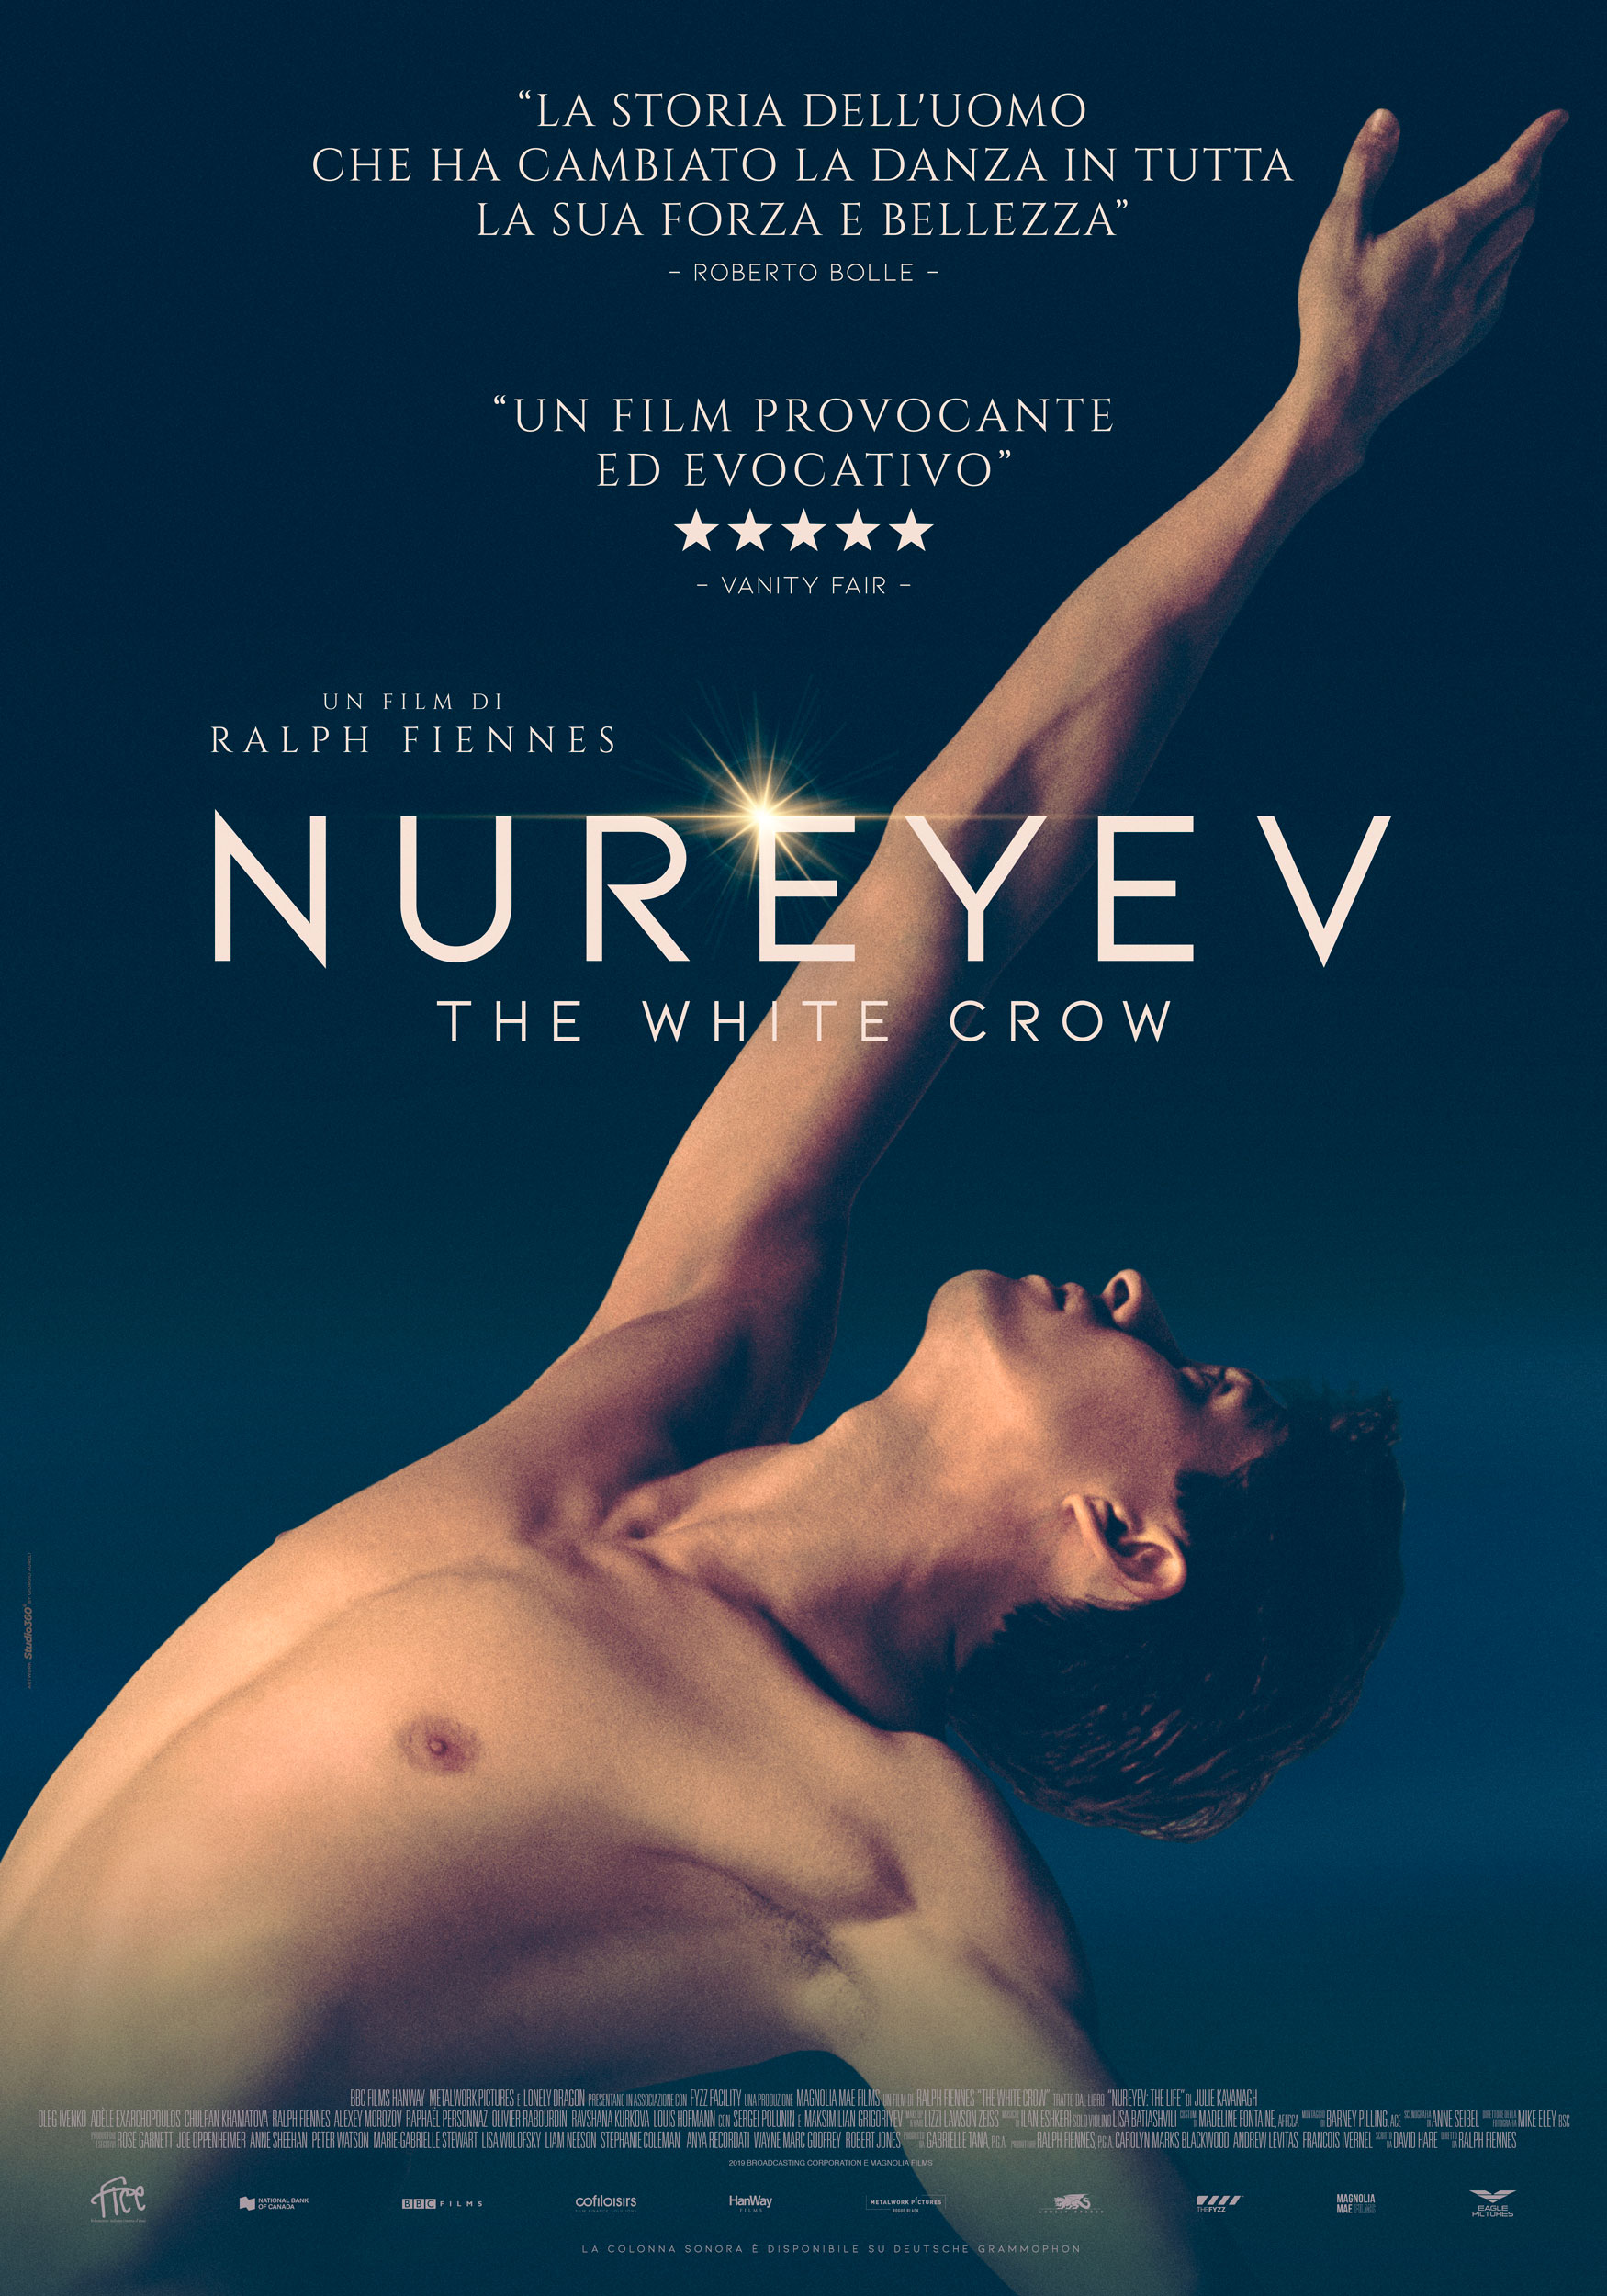 Nureyev: The white crow